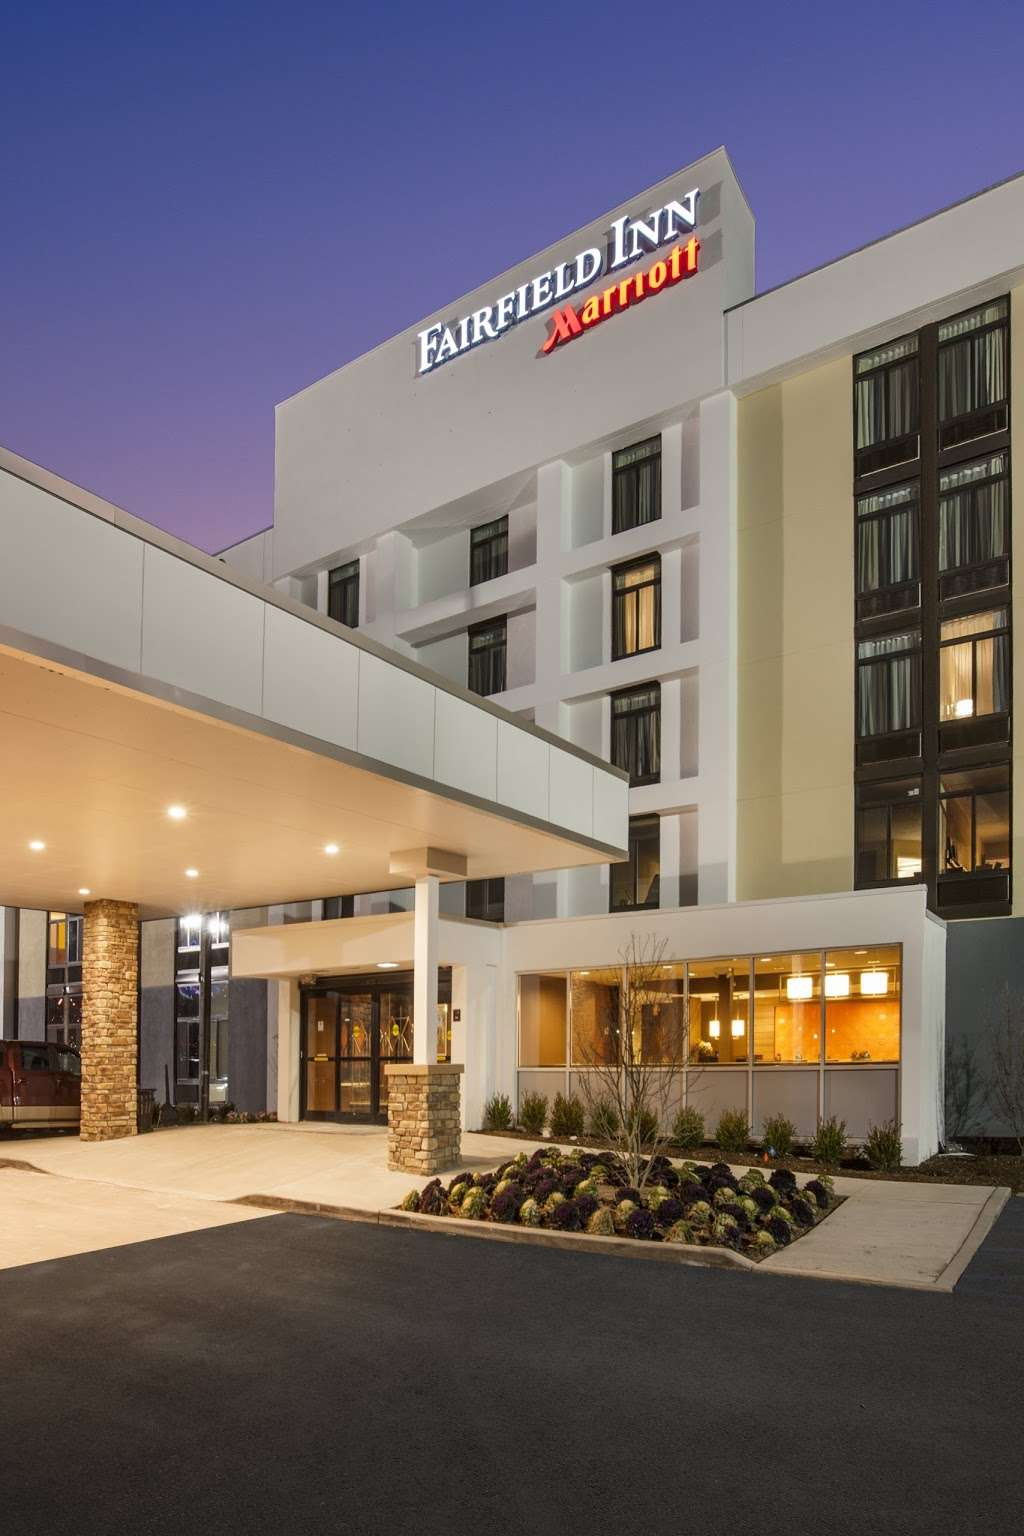 Fairfield Inn by Marriott East Rutherford Meadowlands - lodging  | Photo 9 of 10 | Address: 850 Paterson Plank Rd, East Rutherford, NJ 07073, USA | Phone: (201) 507-5222